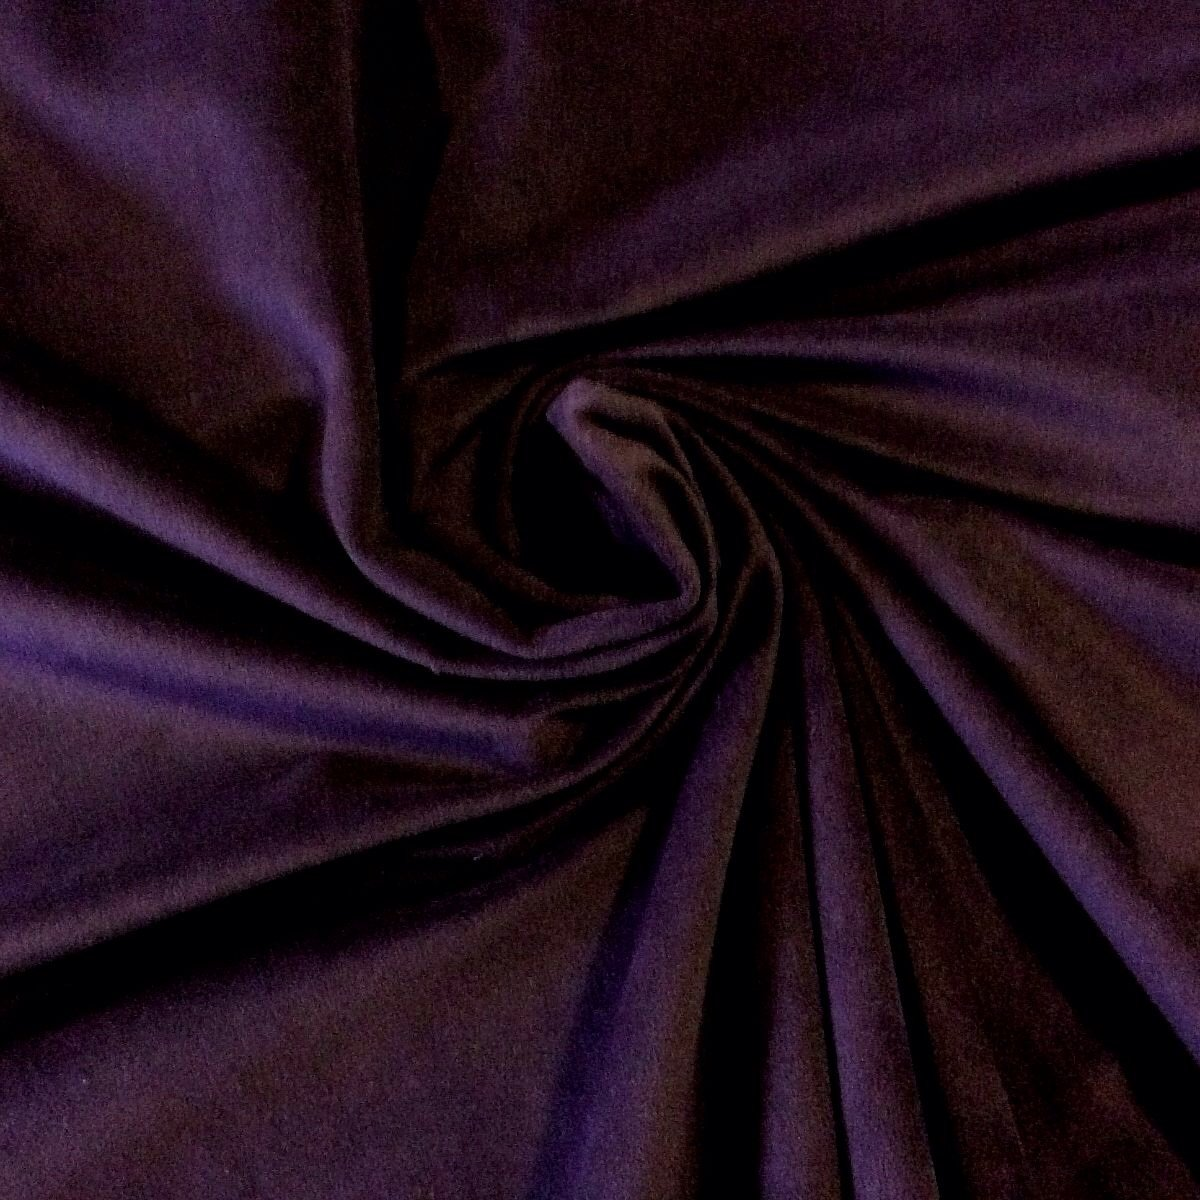 Royal Purple Aubergine Velvet Very Soft Weight Cotton Fabric Drapery